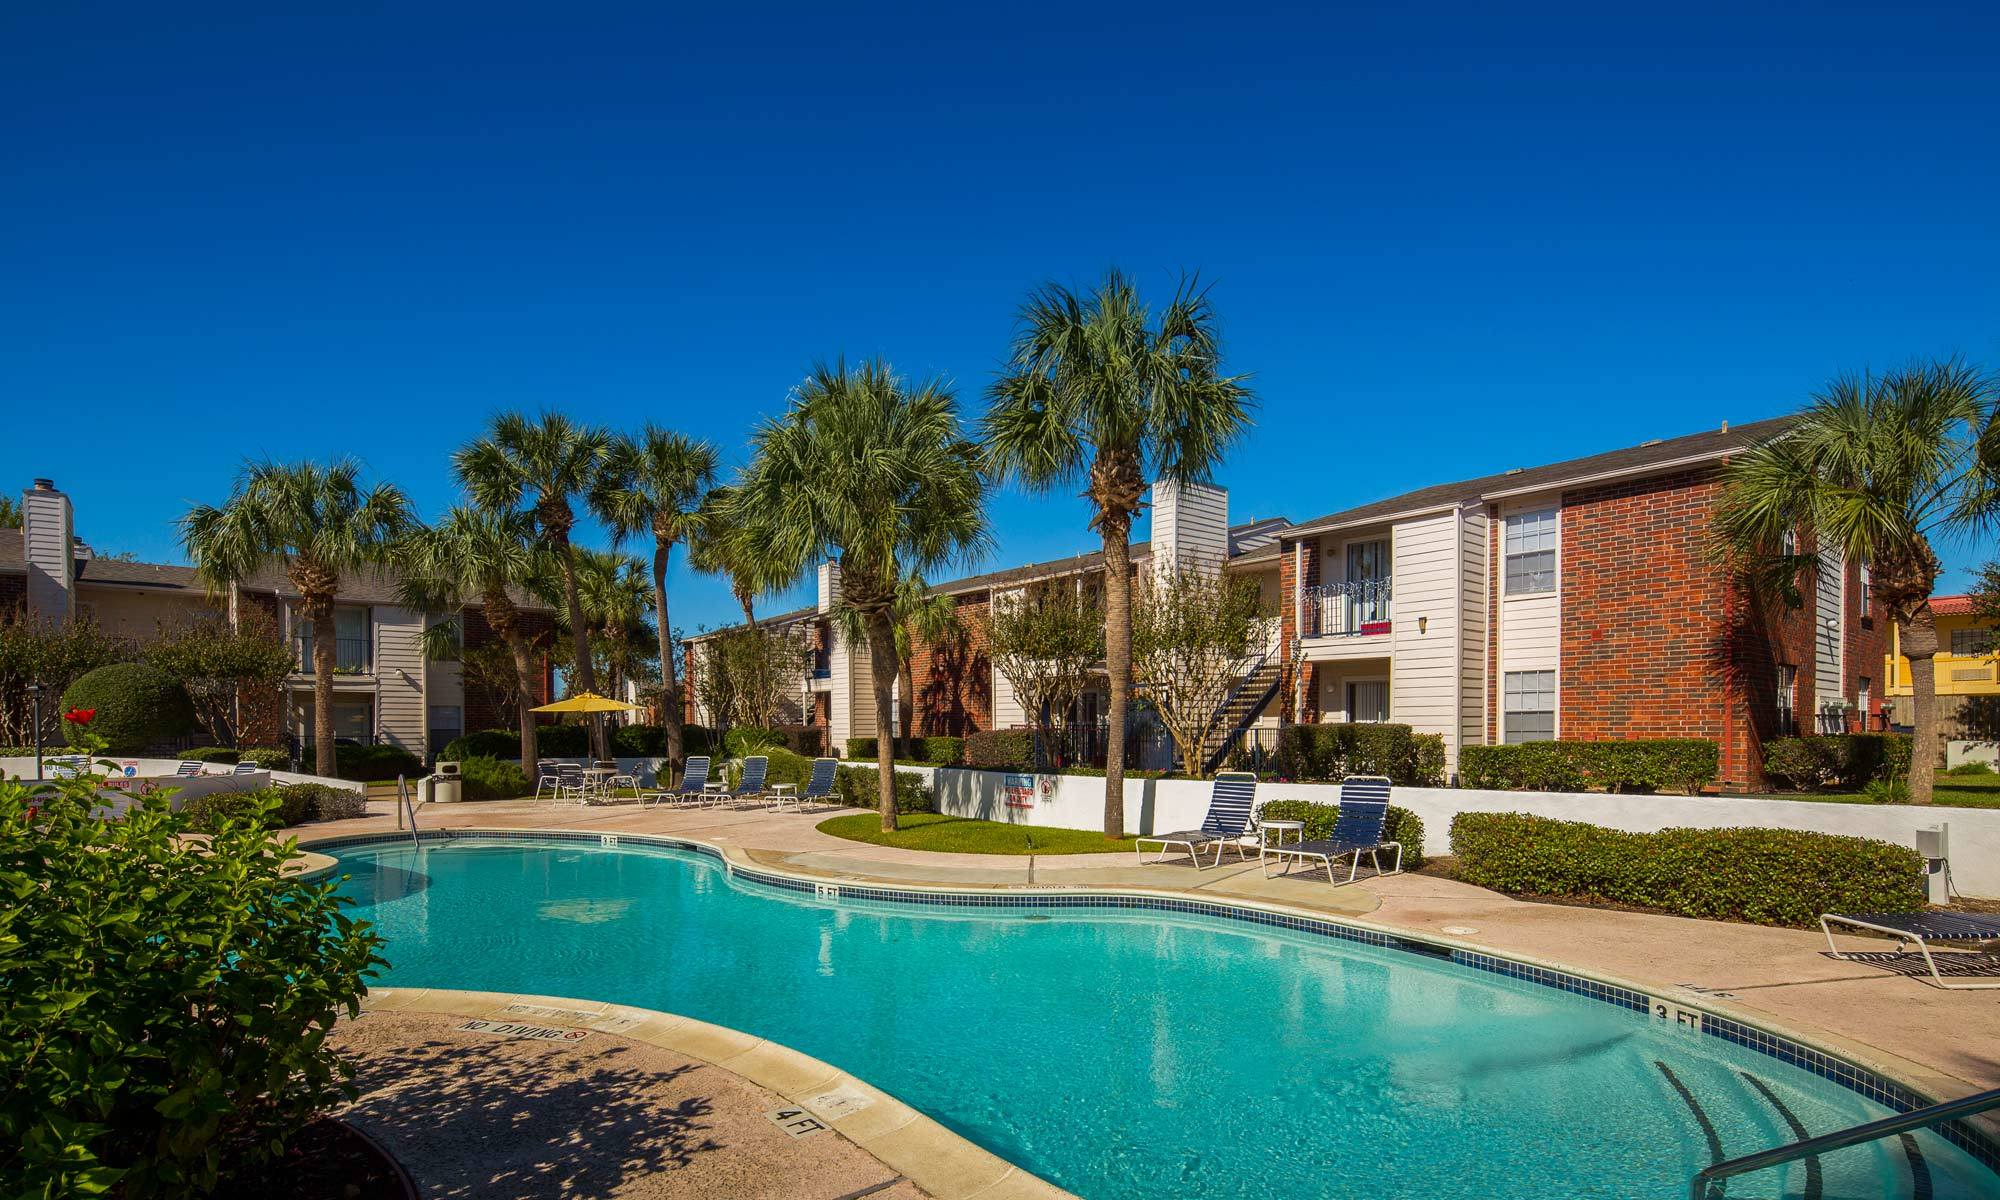 Apartments in Texas City, TX